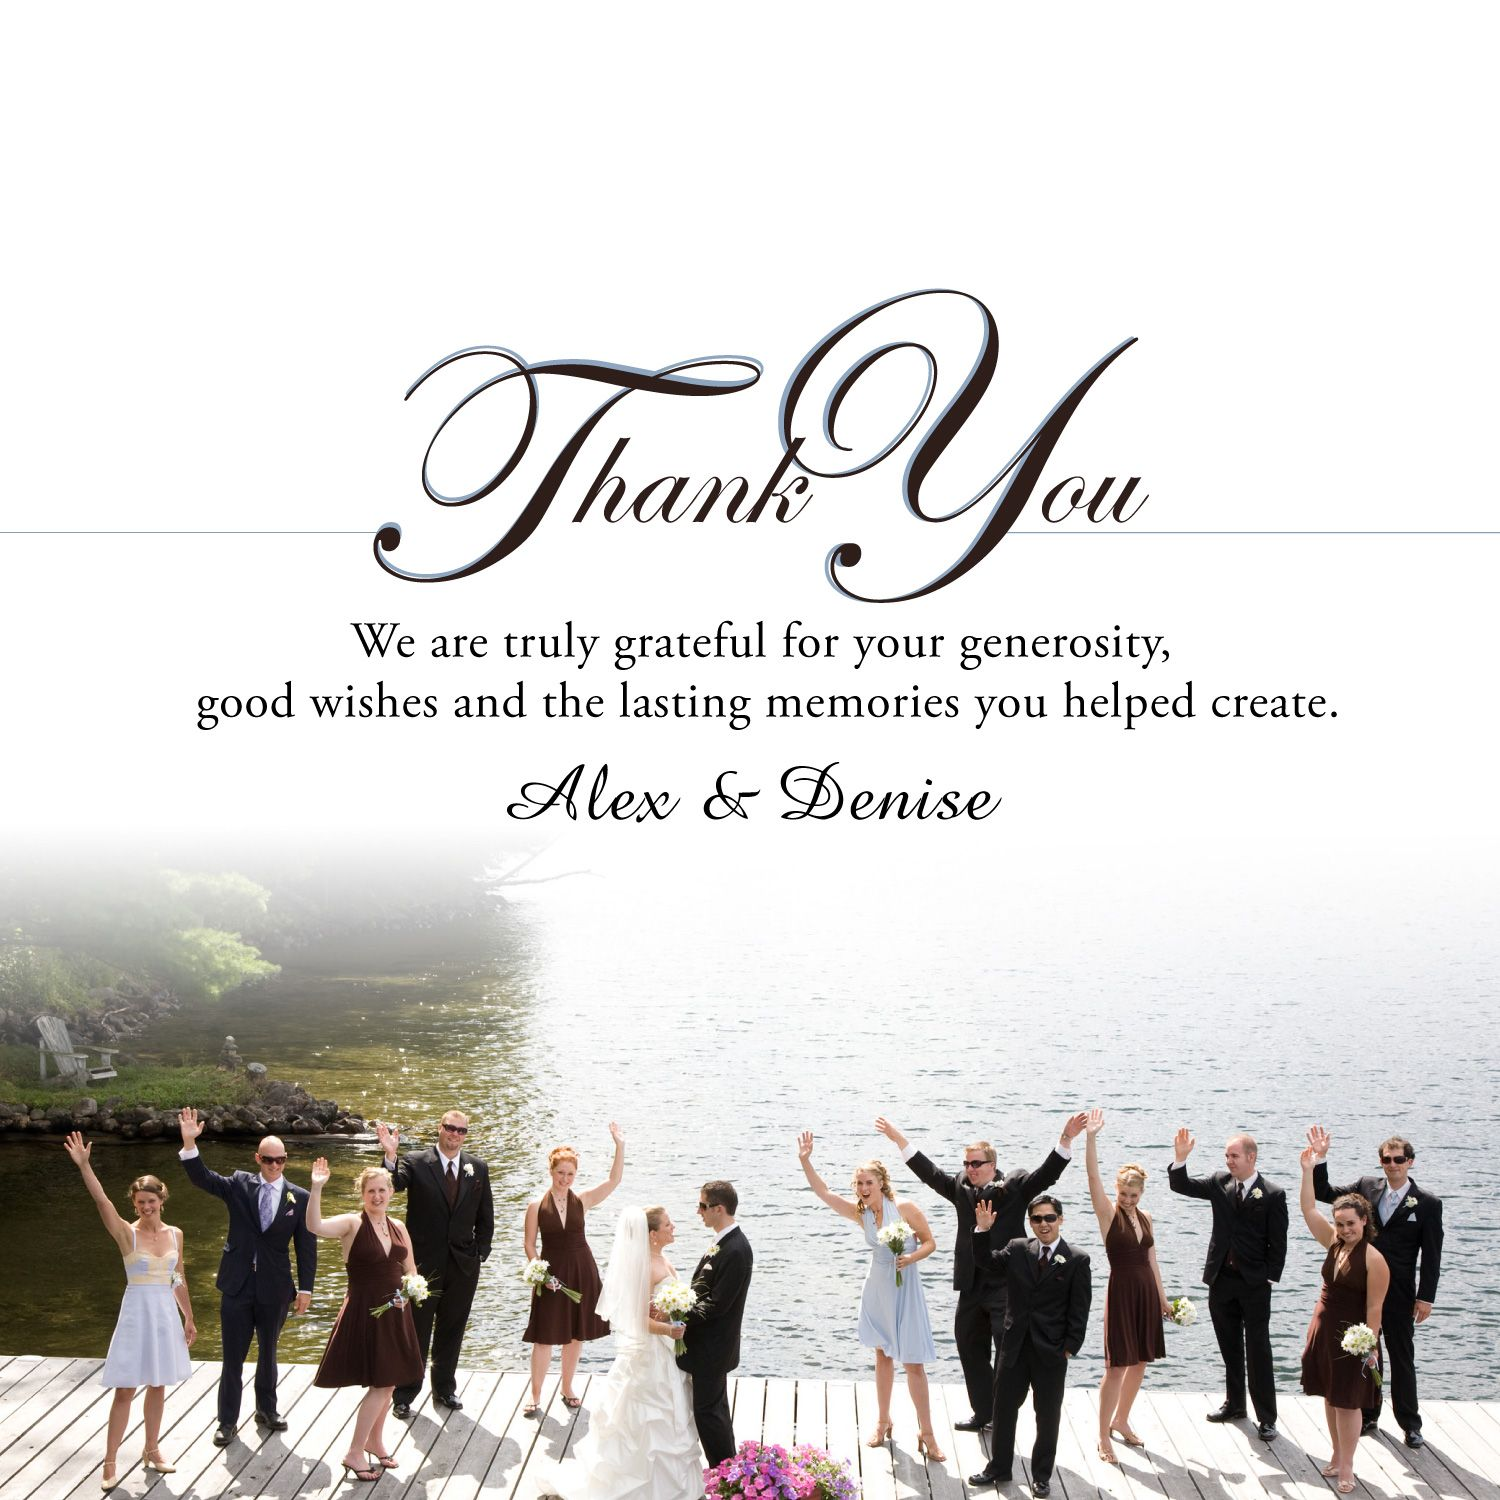 thank you wedding cards Wedding Thank You Cards in a hurry